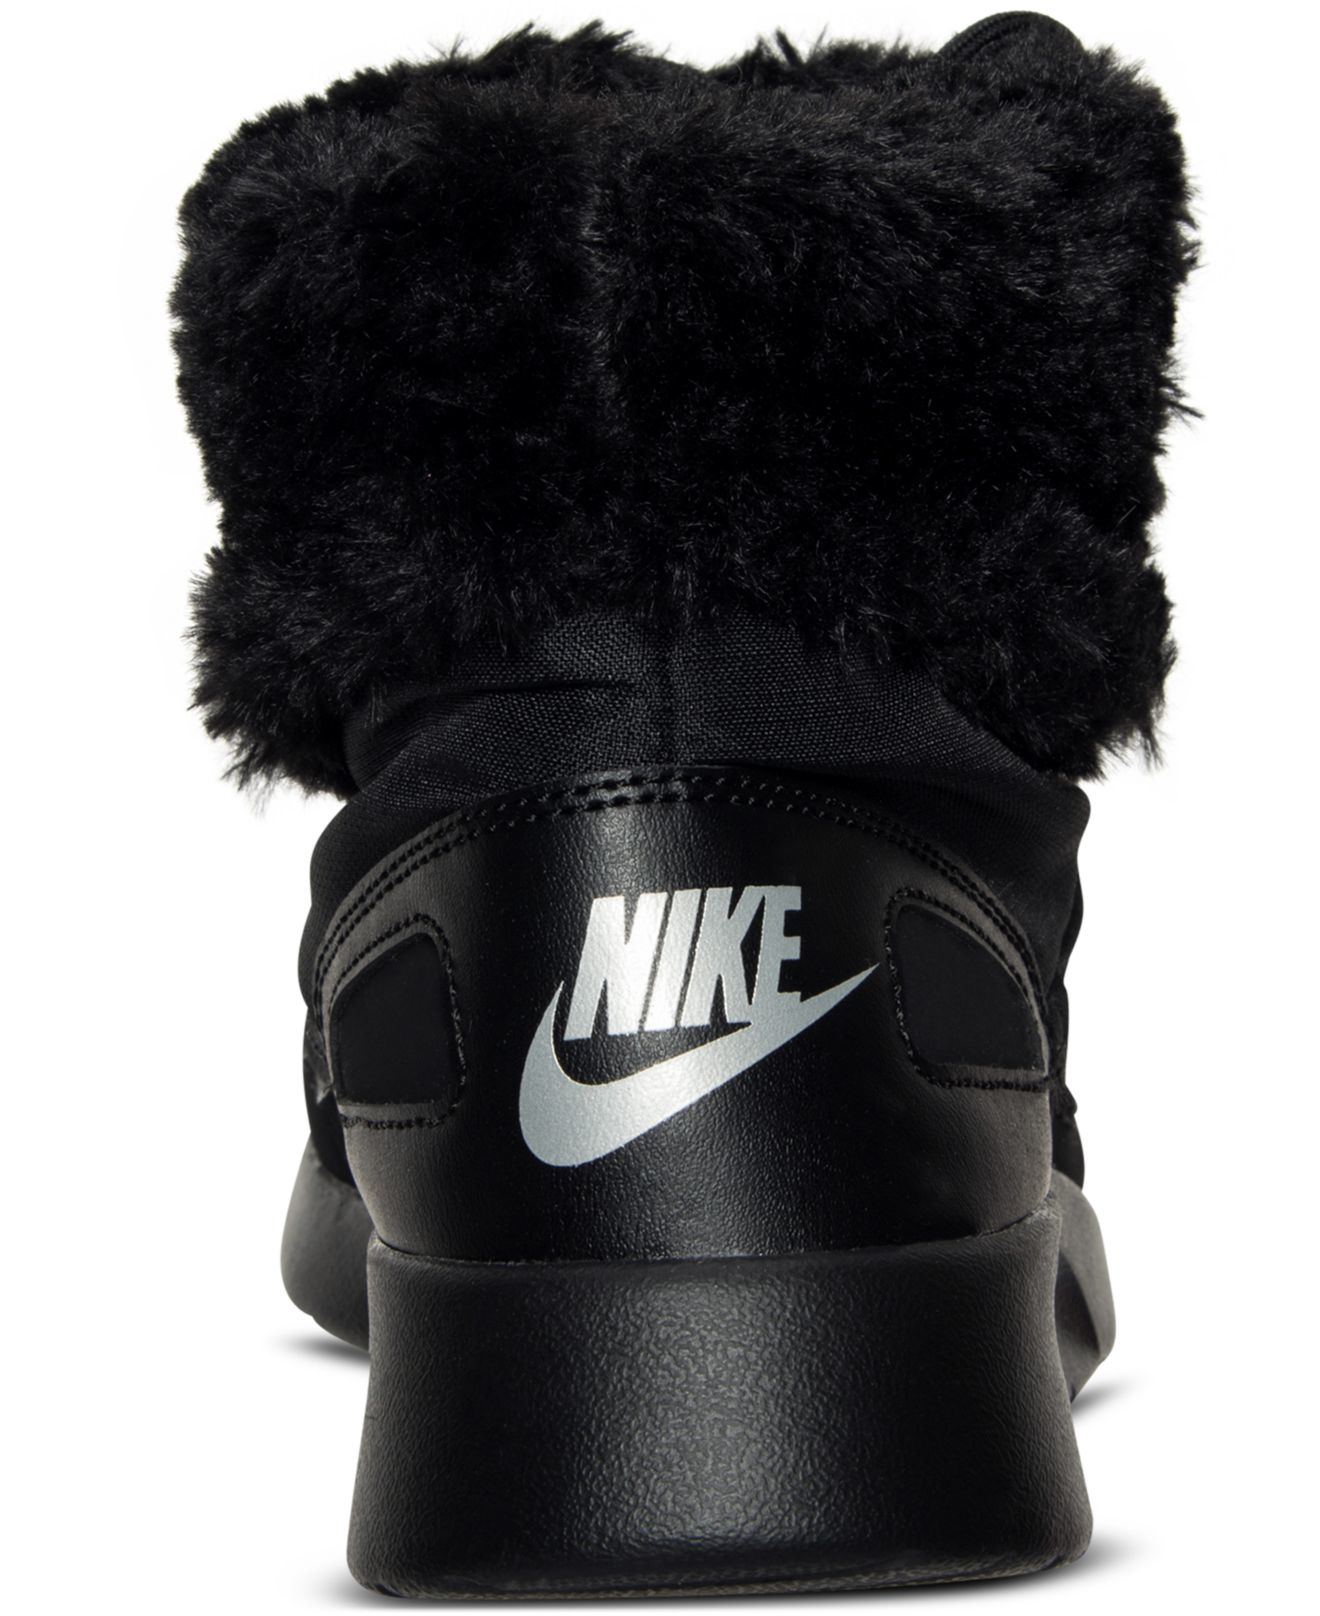 7f4c39011105 Lyst - Nike Women s Kaishi Winter High Sneakerboots From Finish Line ...